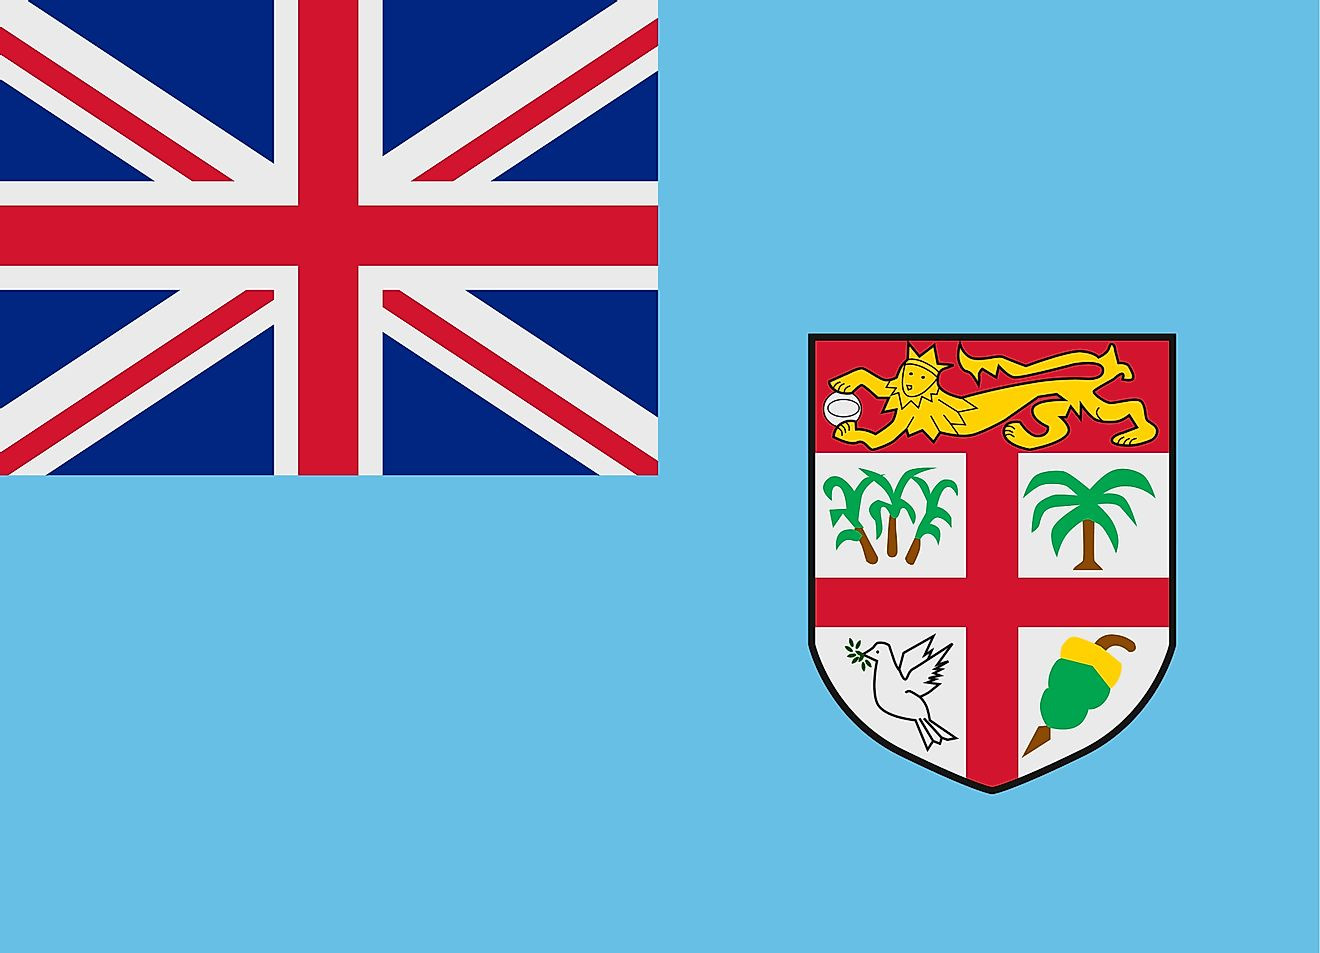 Flag of Fiji has a light blue background and features the British Union Jack on the upper hoist-side and a shield on the fly side.